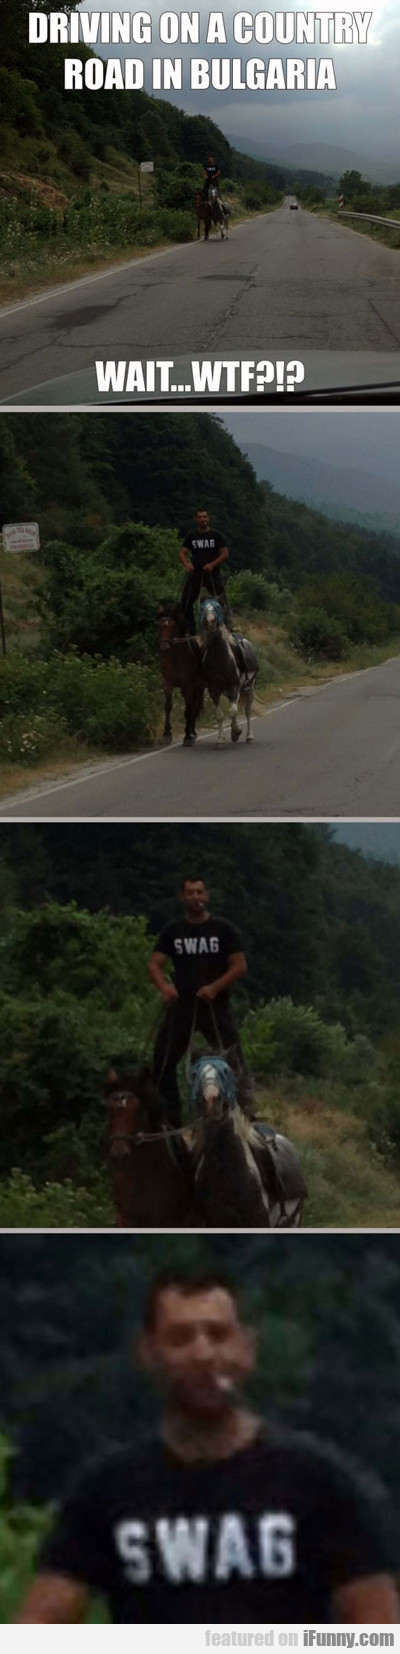 Driving On A Country Road In Bulgaria...